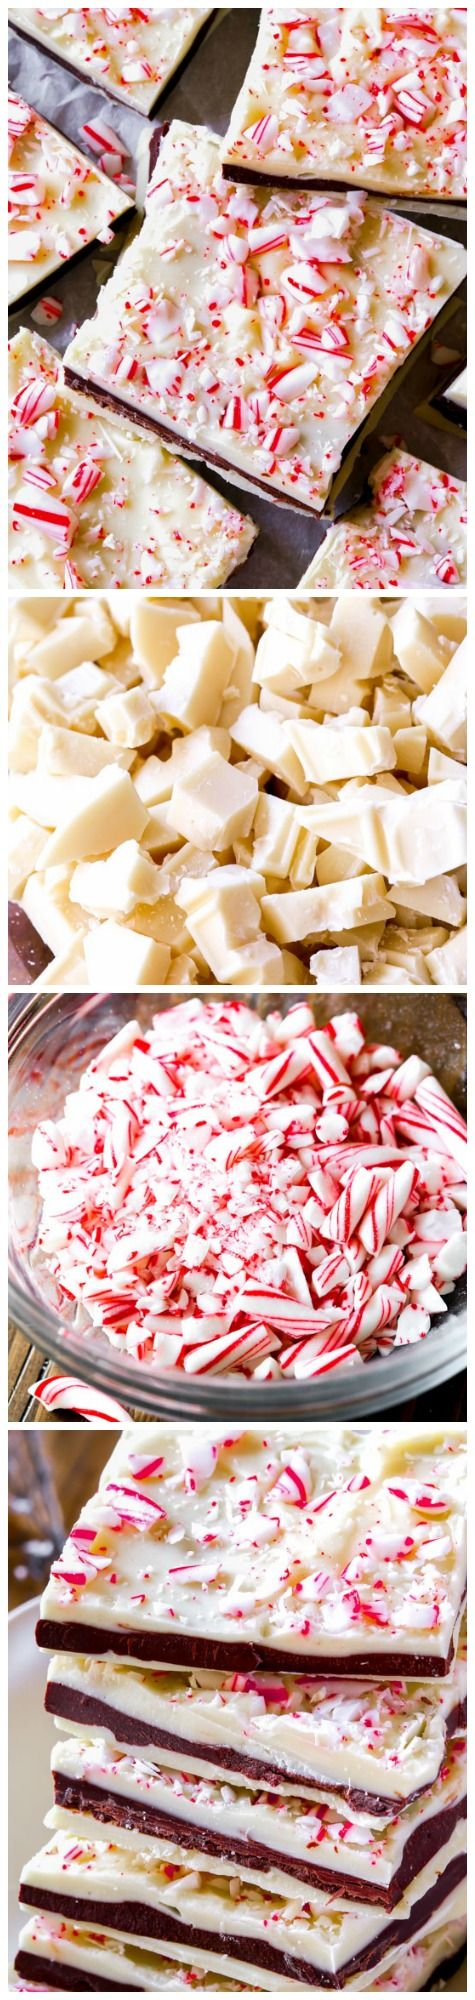 Incredibly simple white chocolate and semi-sweet chocolate layered bark flavored with peppermint and crushed candy canes!